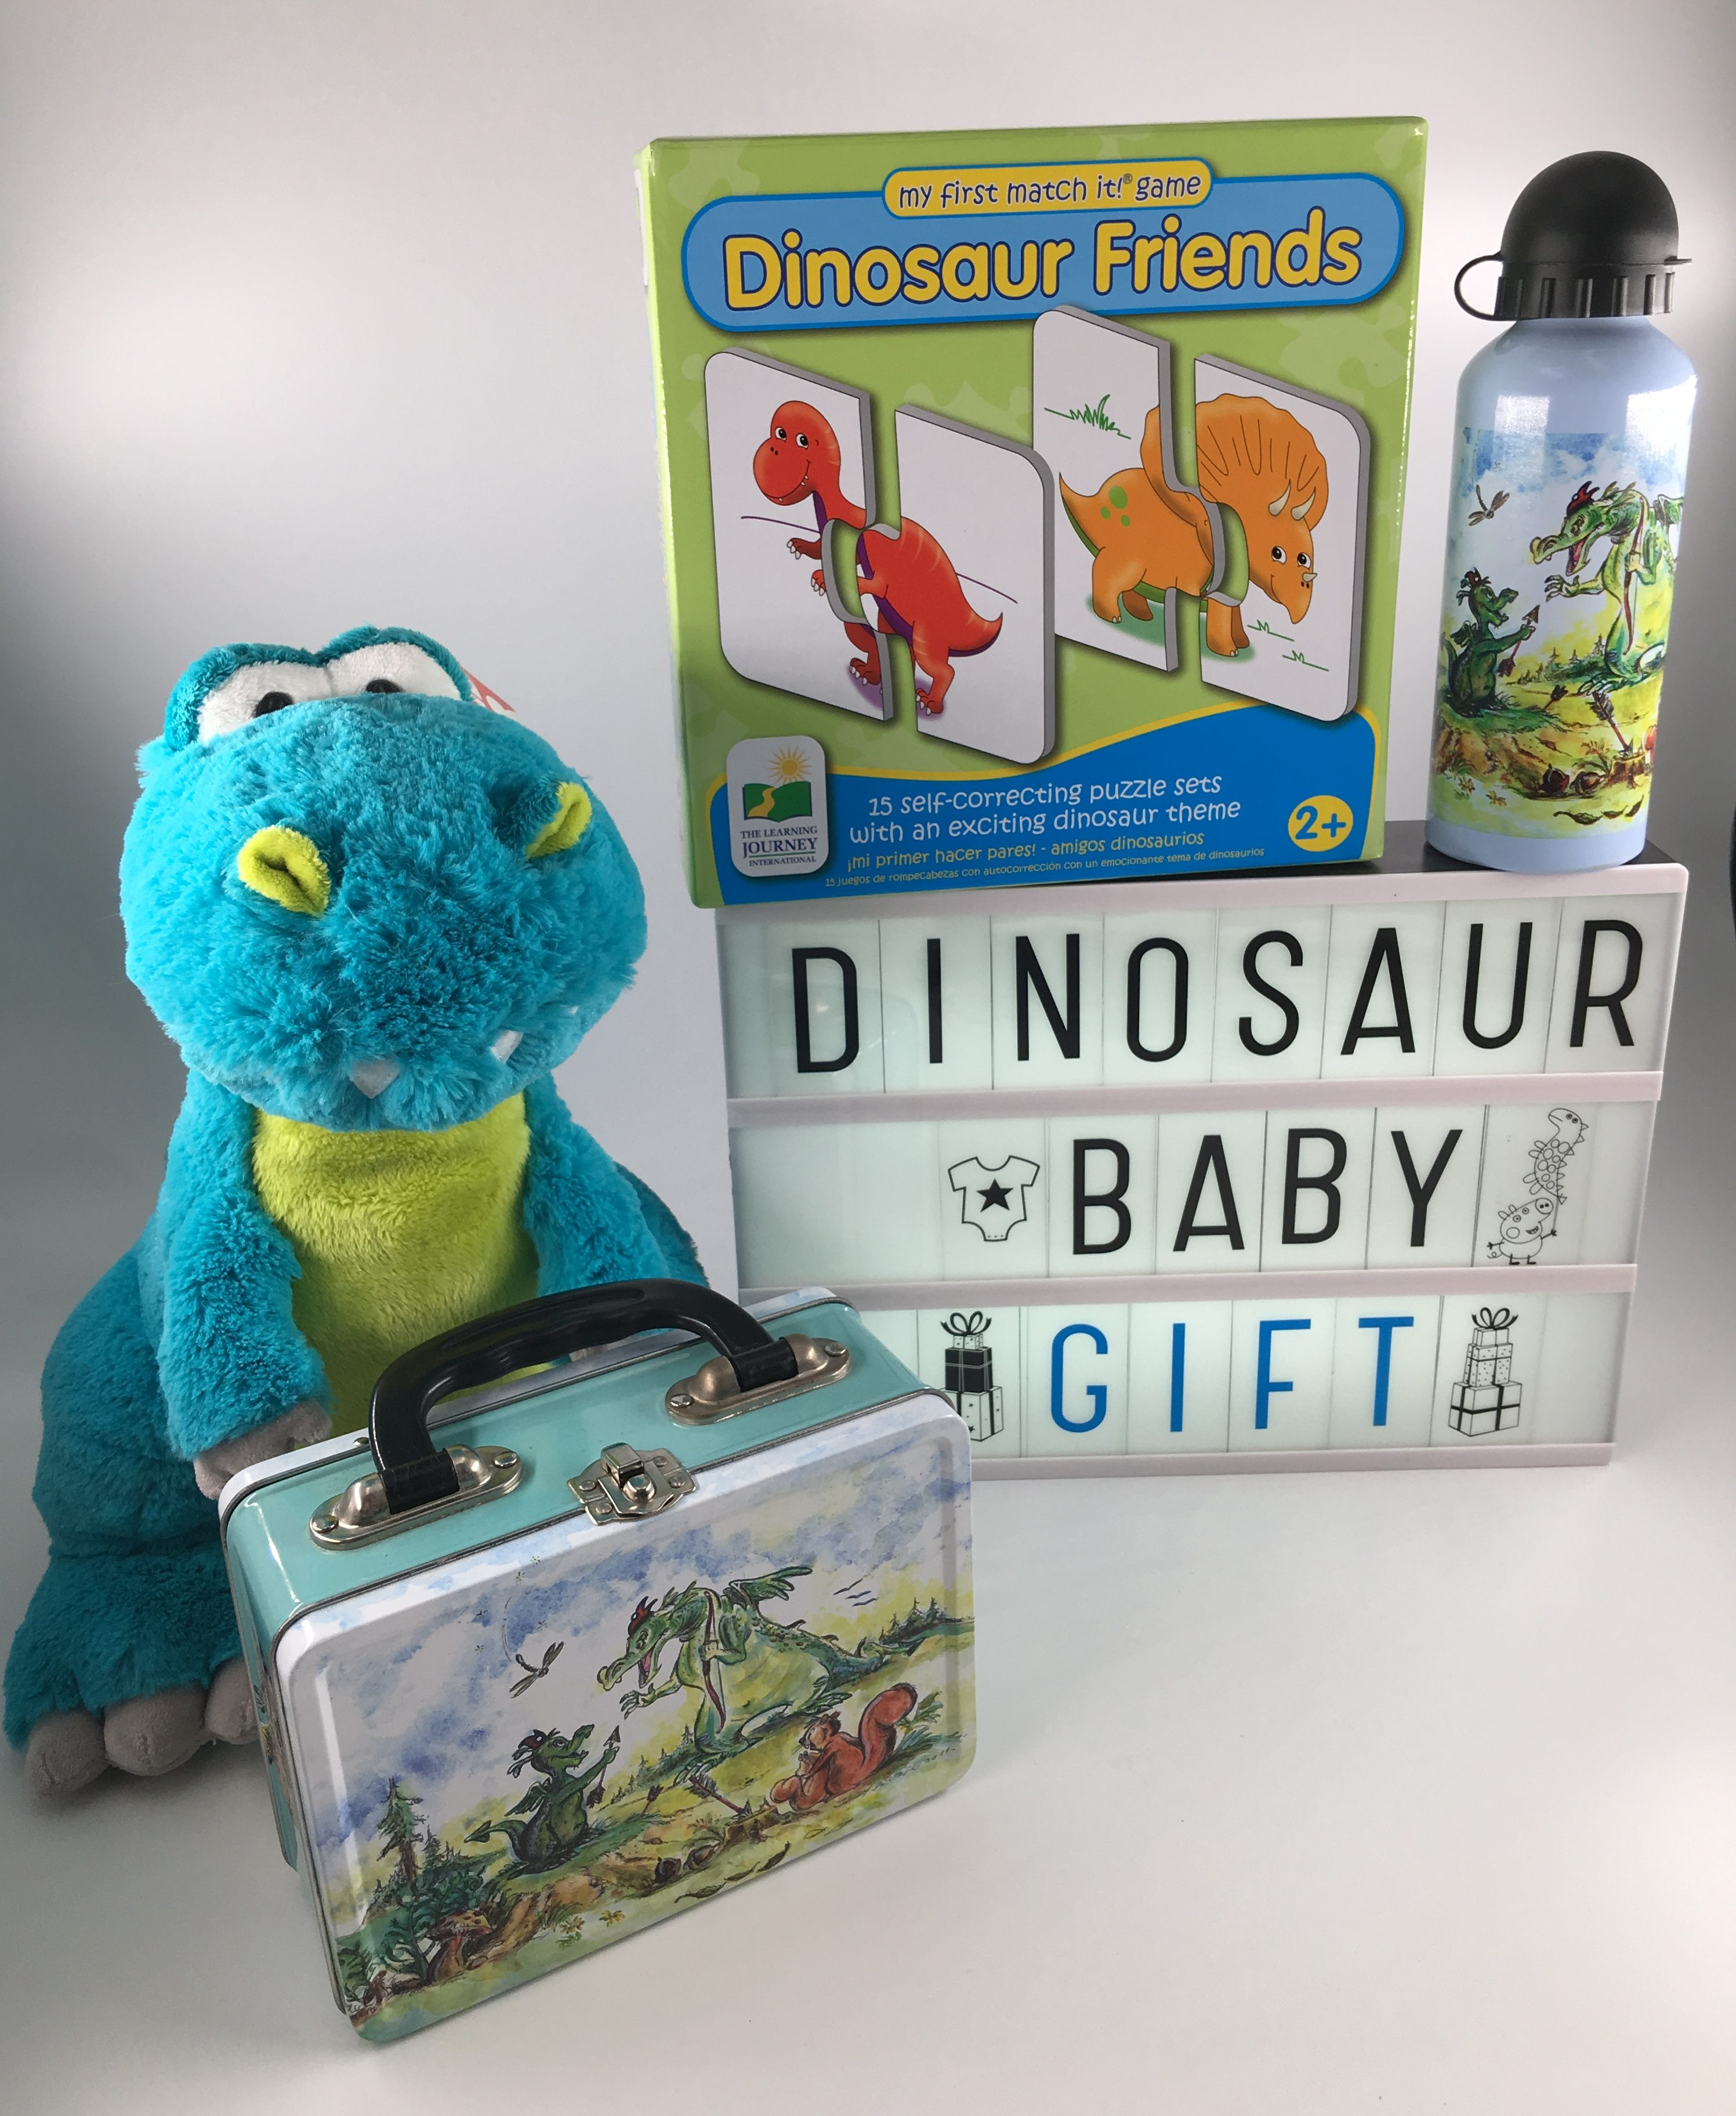 Dinosaur Toy Baby Gifts